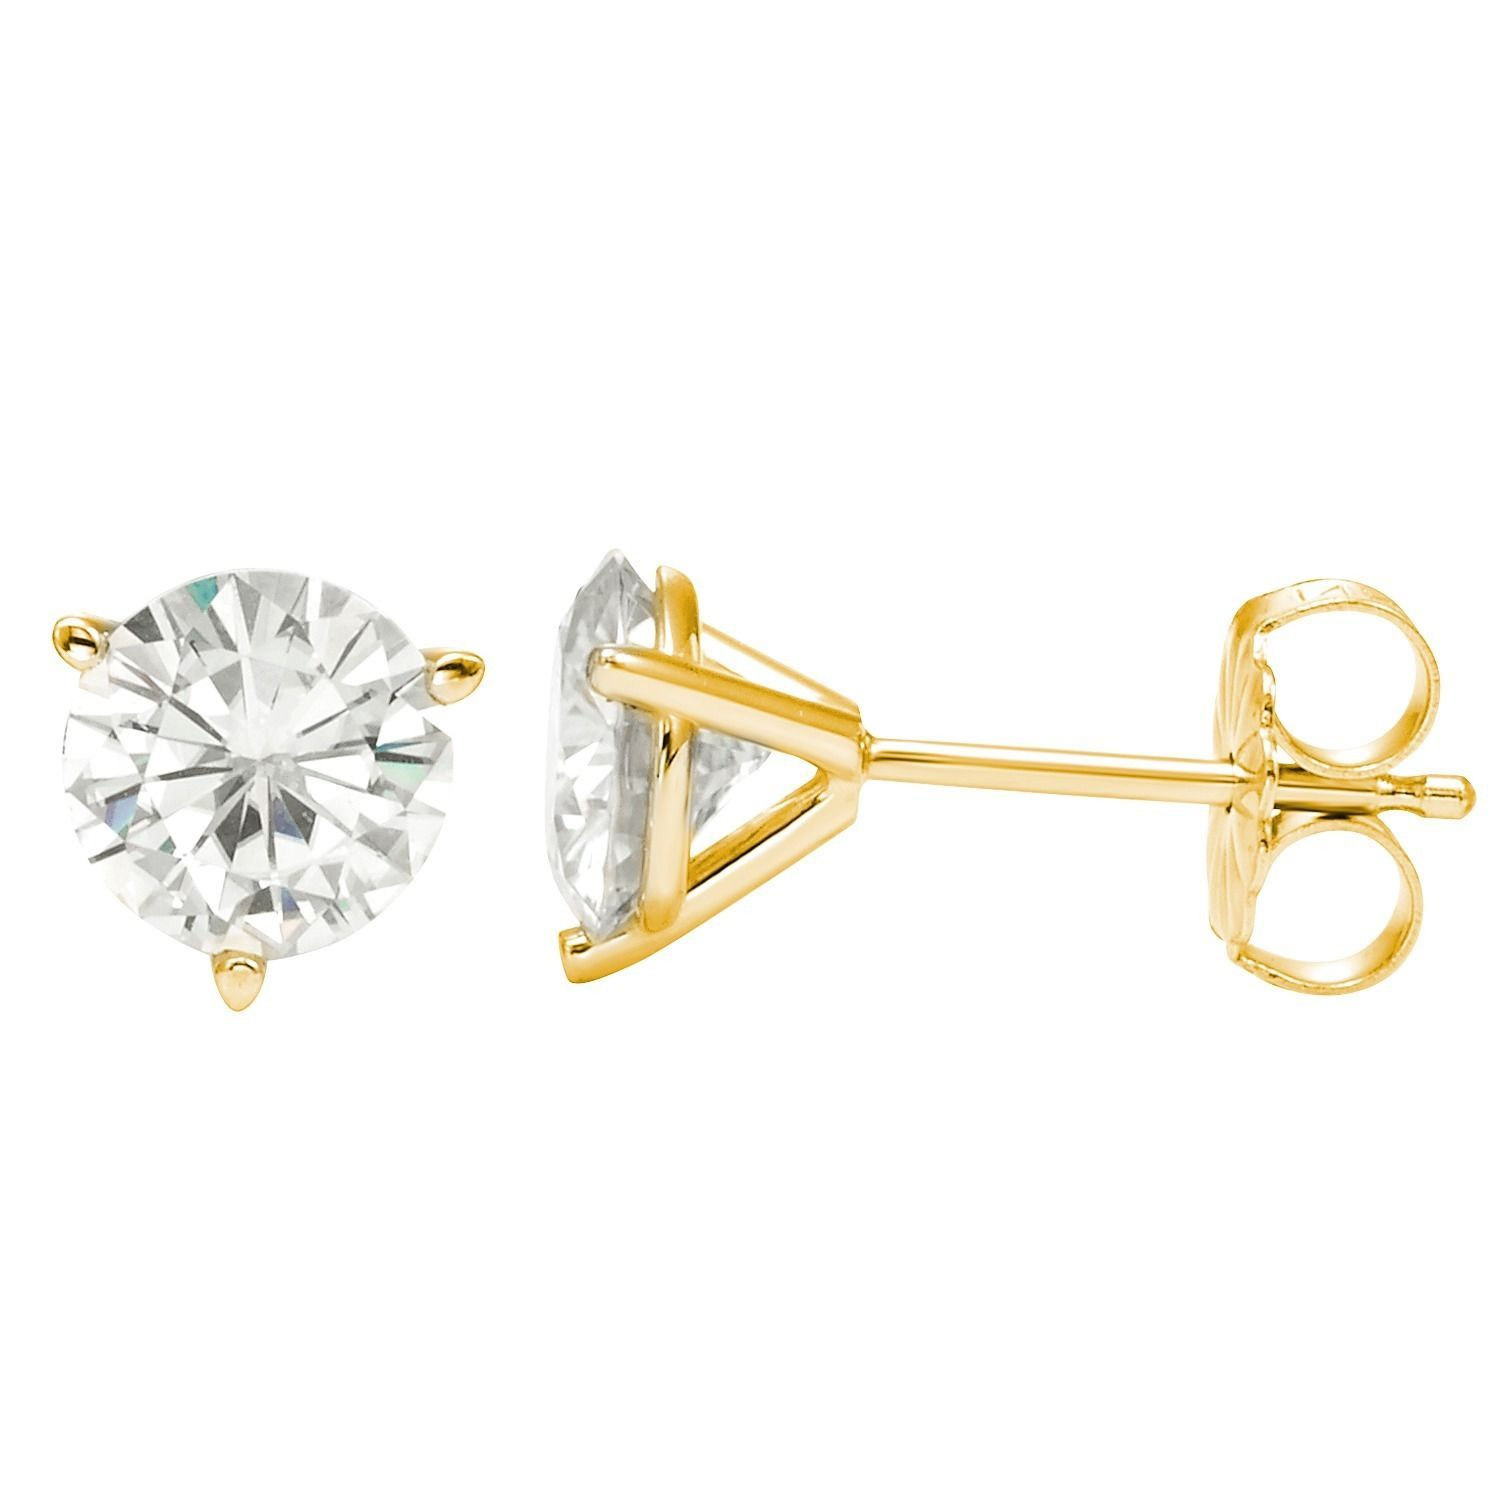 com earrings brilliant by gold charles dp amazon jewelry dew stud moissanite forever round white colvard